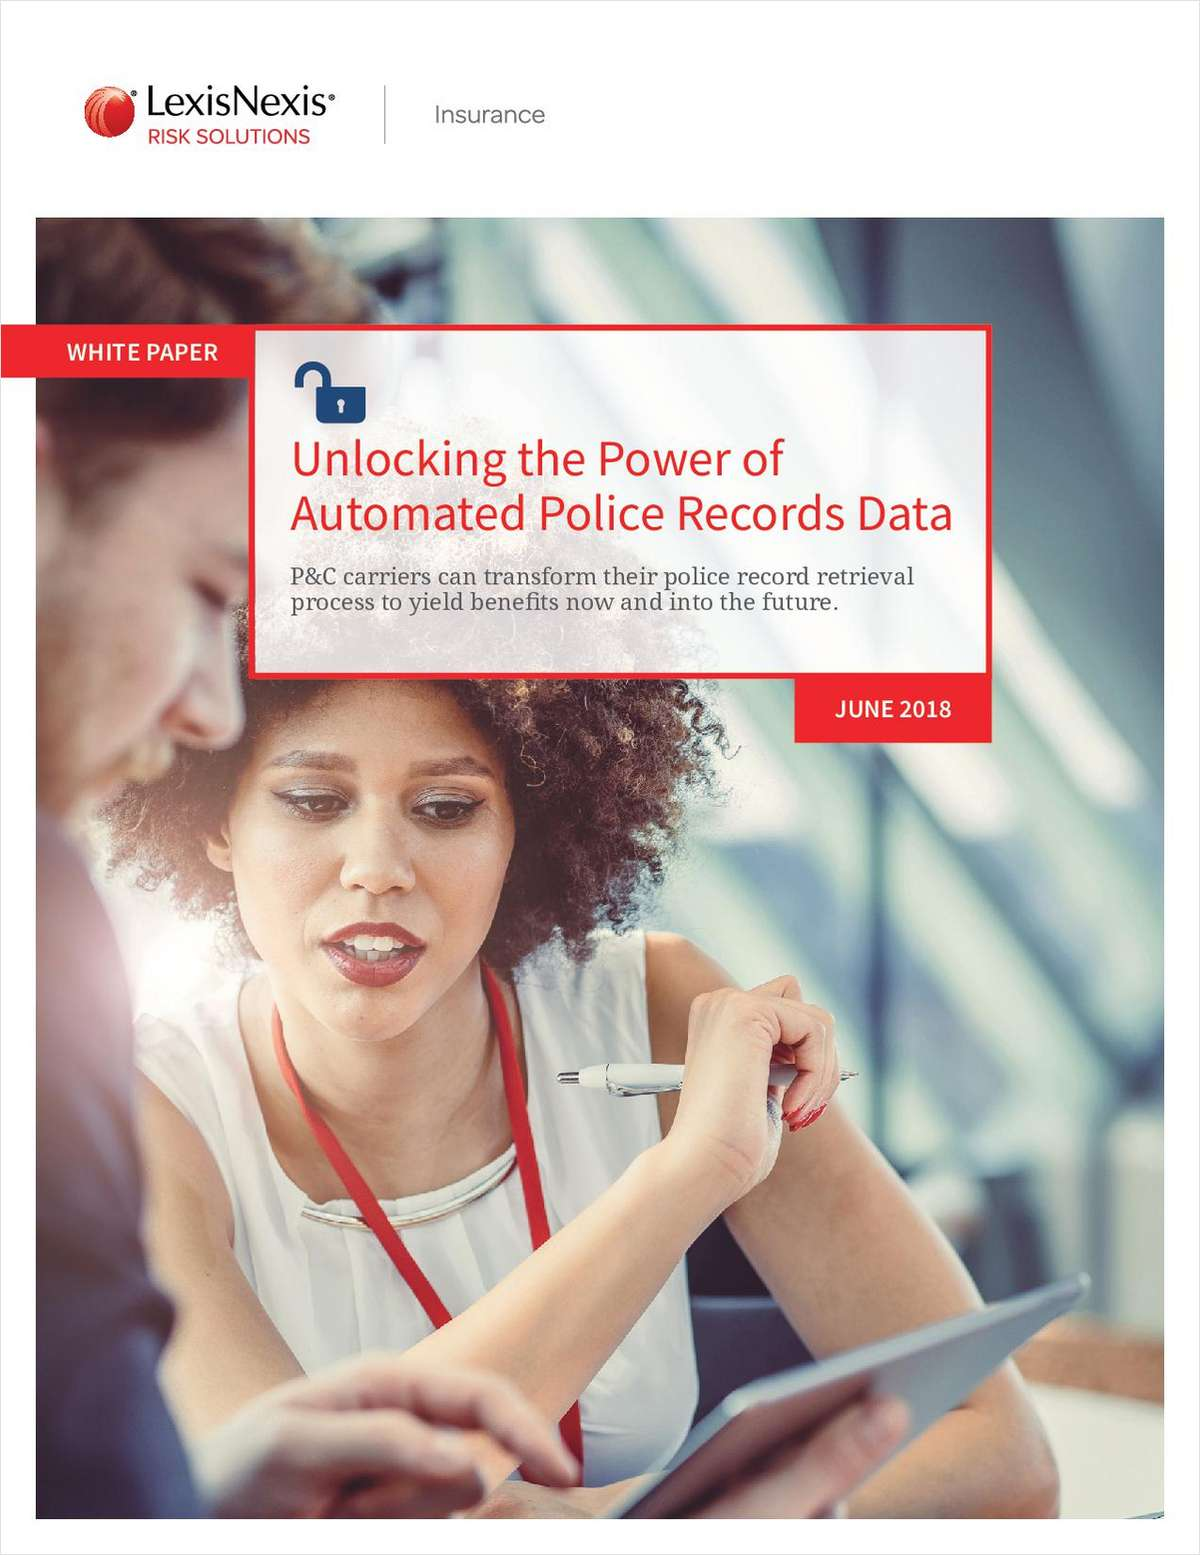 Unlock the Power of Automated Police Records Data